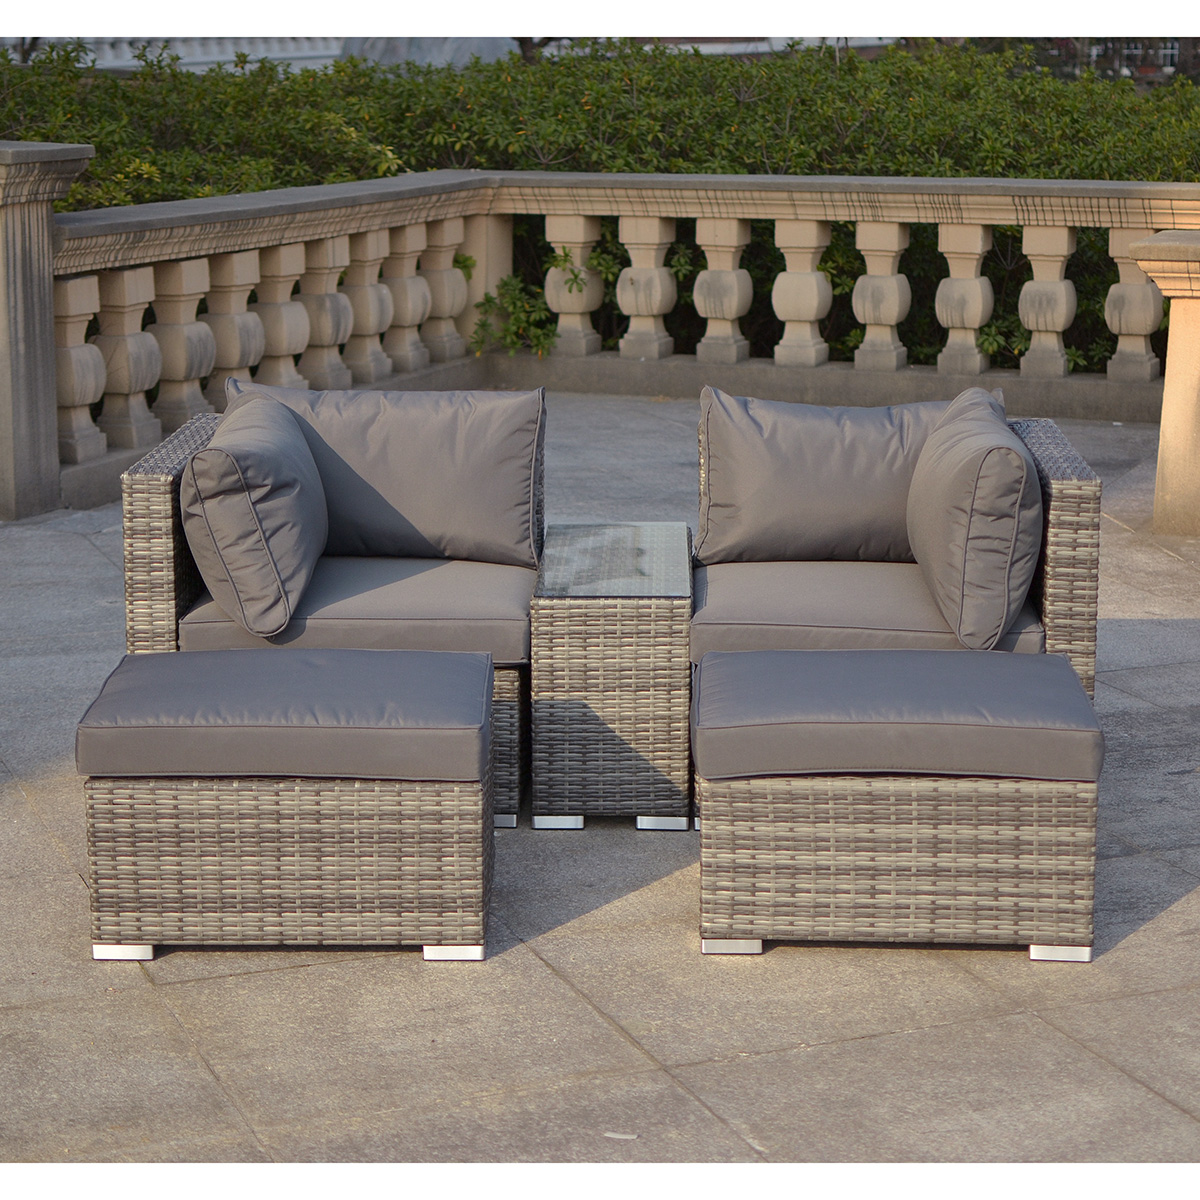 Excellent With Rattan Lounge Set